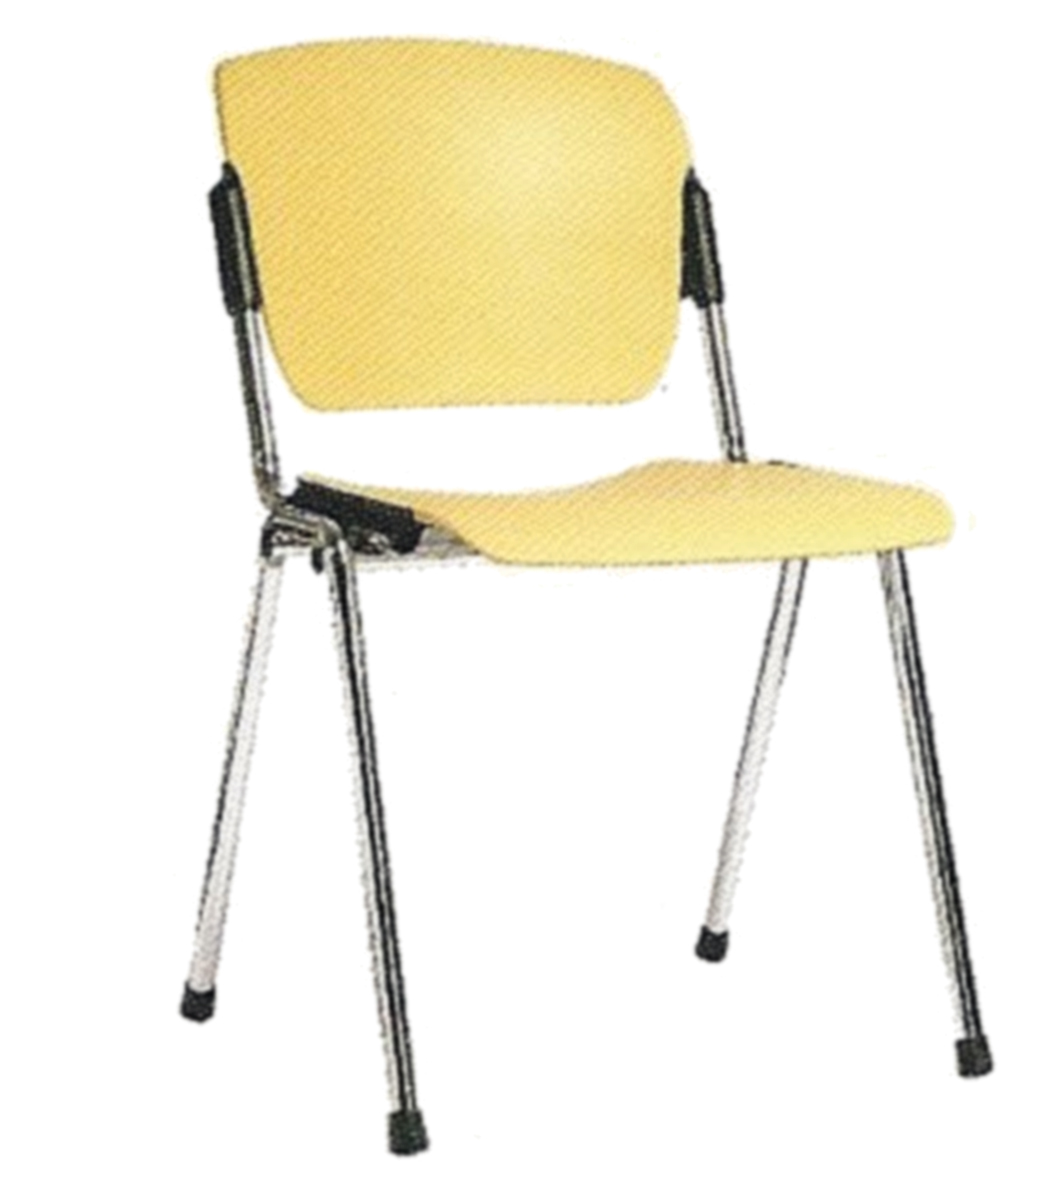 Techline Seating - Cali Multi-Purpose Seat